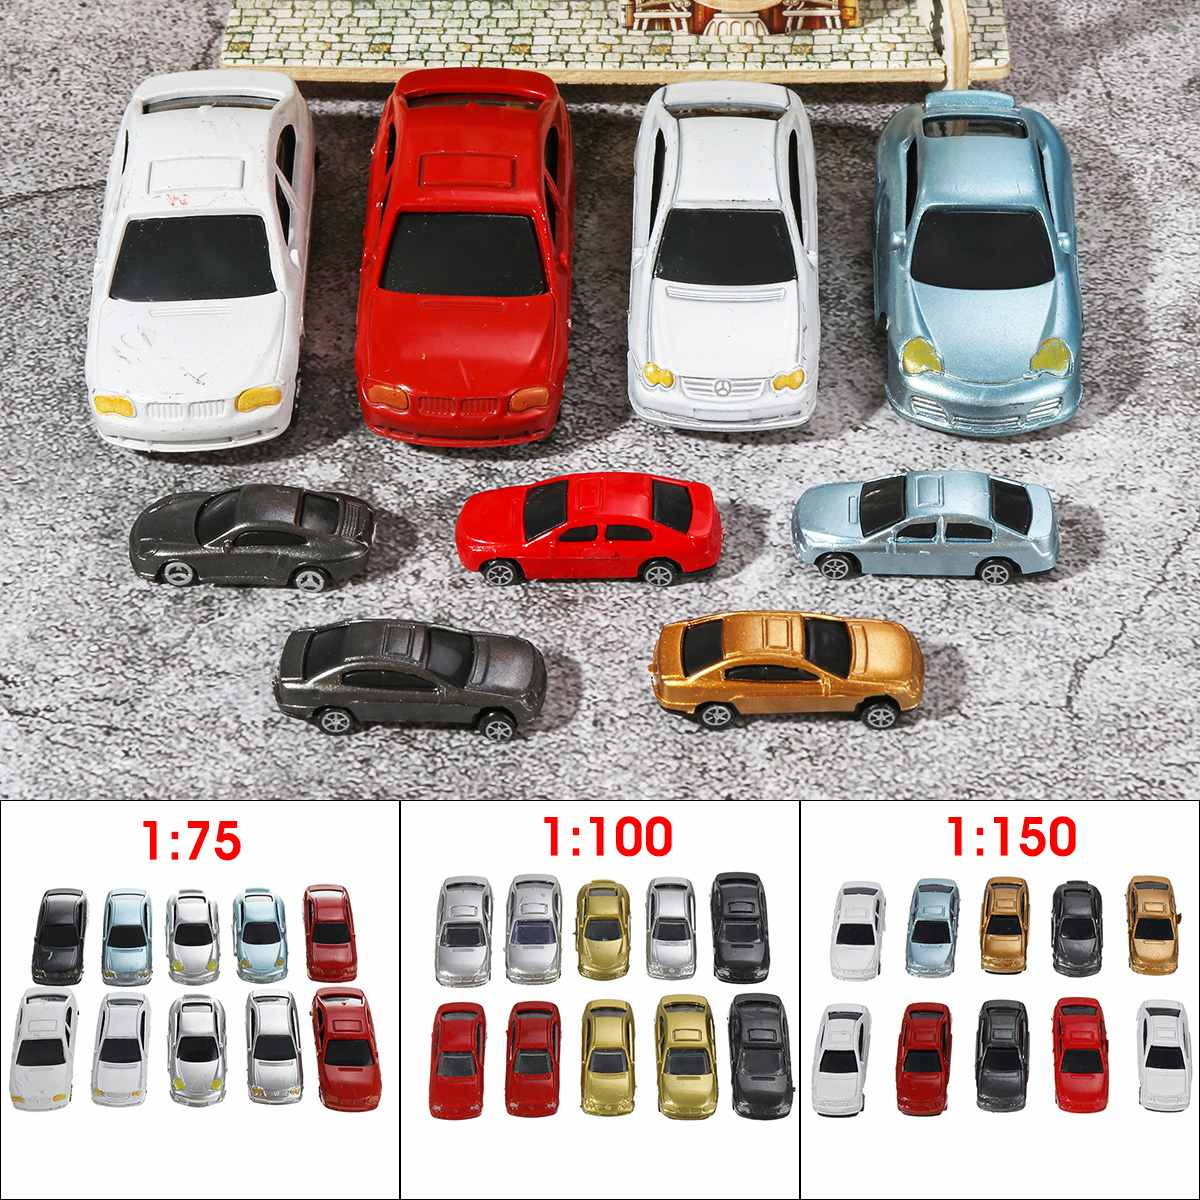 10Pcs 1:75/<font><b>1:100</b></font>/1:150 Scale Plastic Model <font><b>Car</b></font> Miniatures For Model Building Toys Train Layout Railway Modeling <font><b>Car</b></font> Kids GIfts image